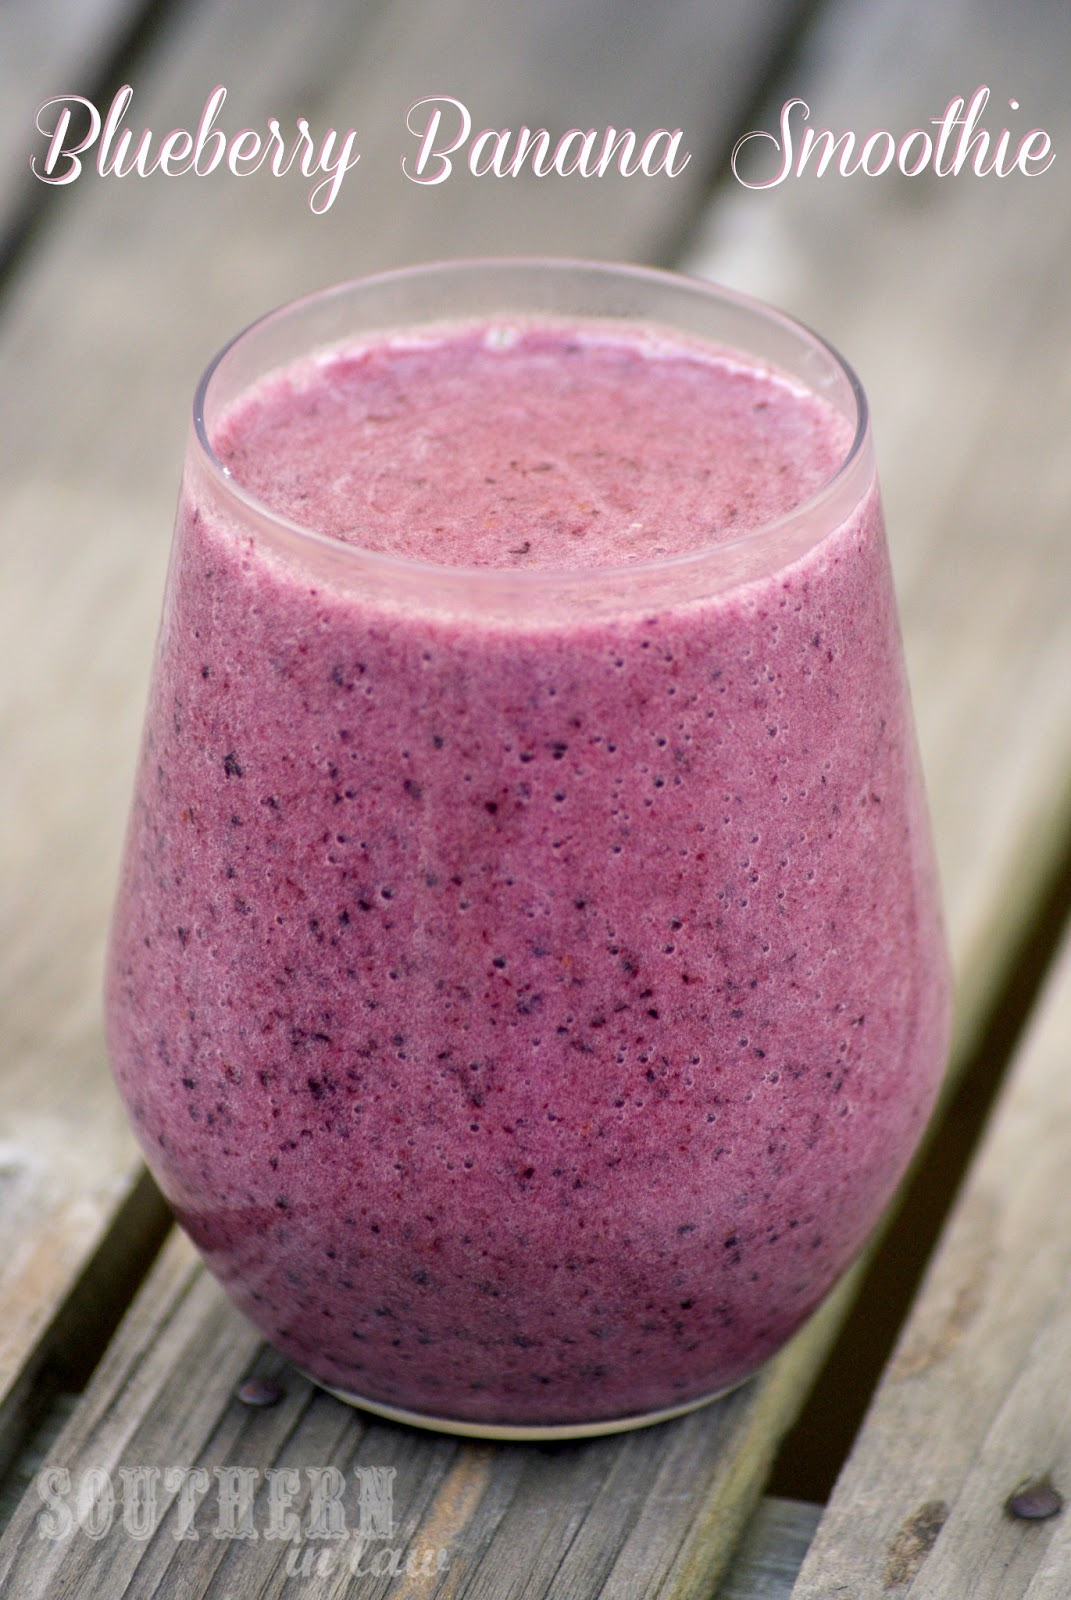 Southern In-Law: Recipe: Blueberry Banana Smoothie